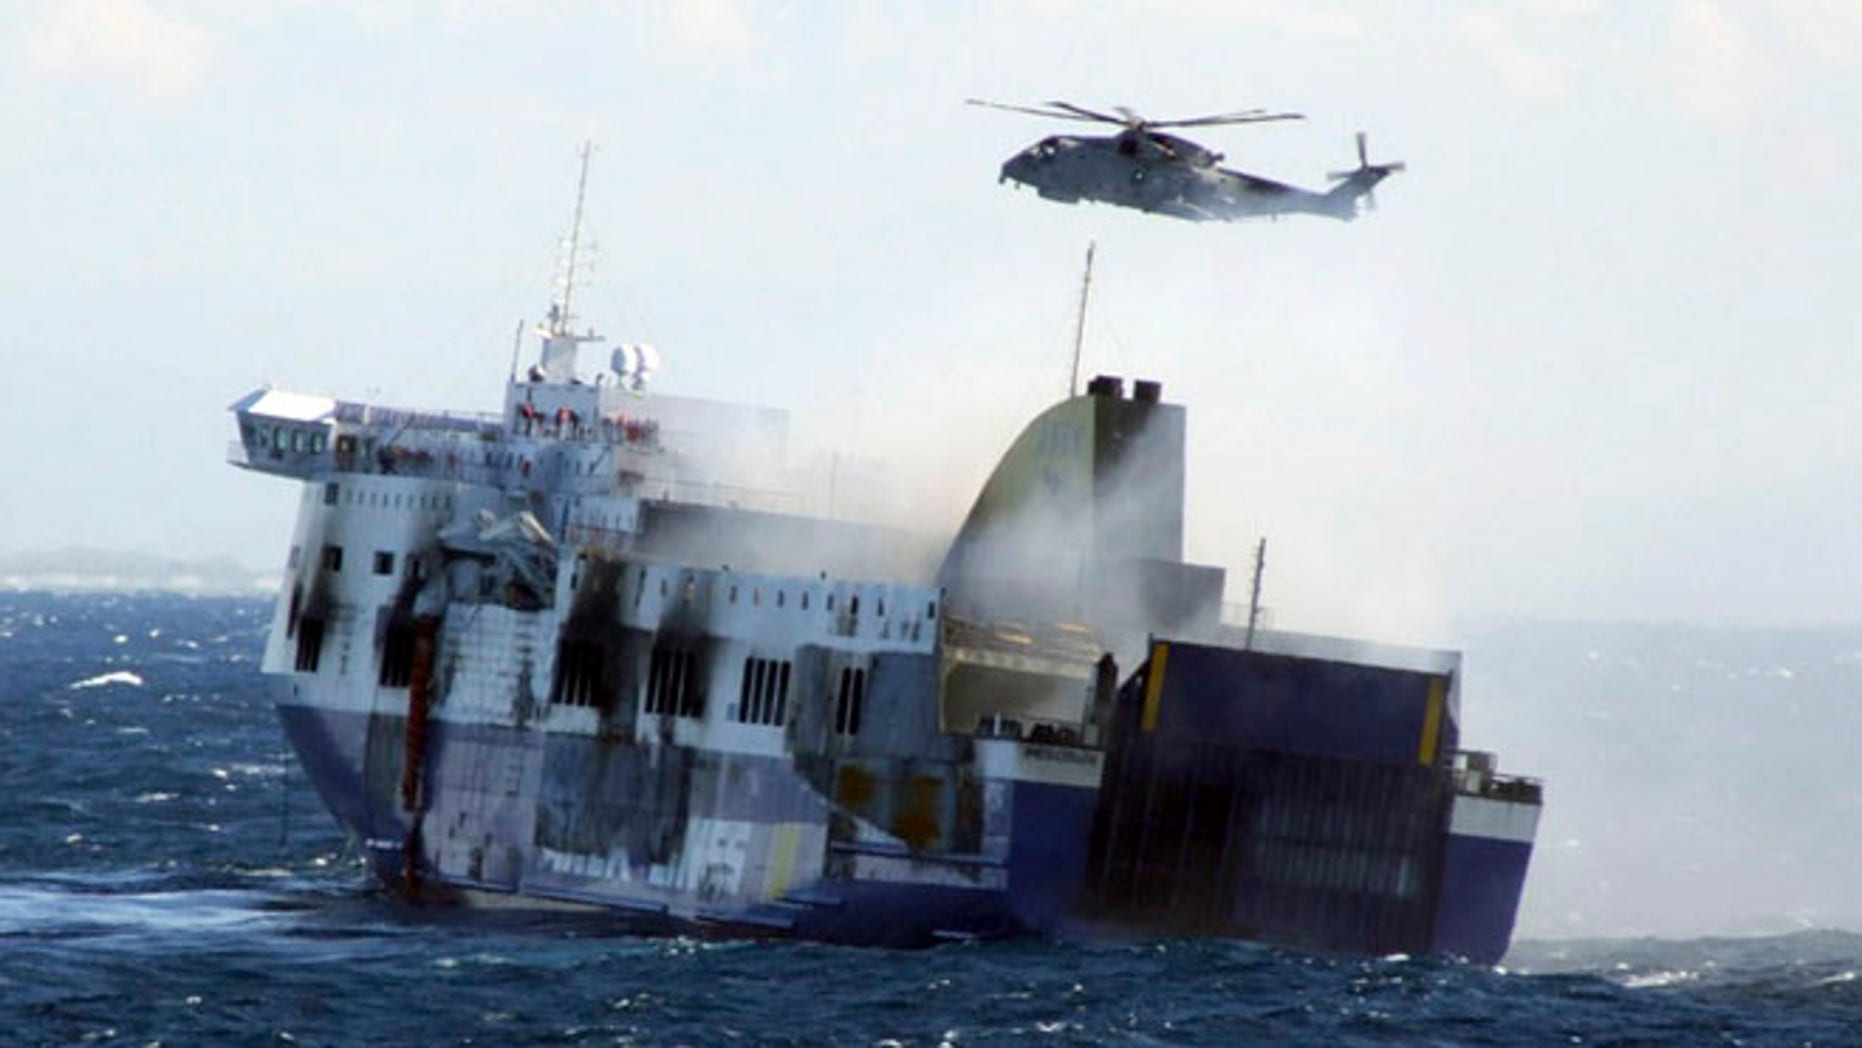 Dec. 29, 2014: In this image released by the Italian Navy, smoke billows from the Italian-flagged Norman Atlantic that caught fire in the Adriatic Sea.